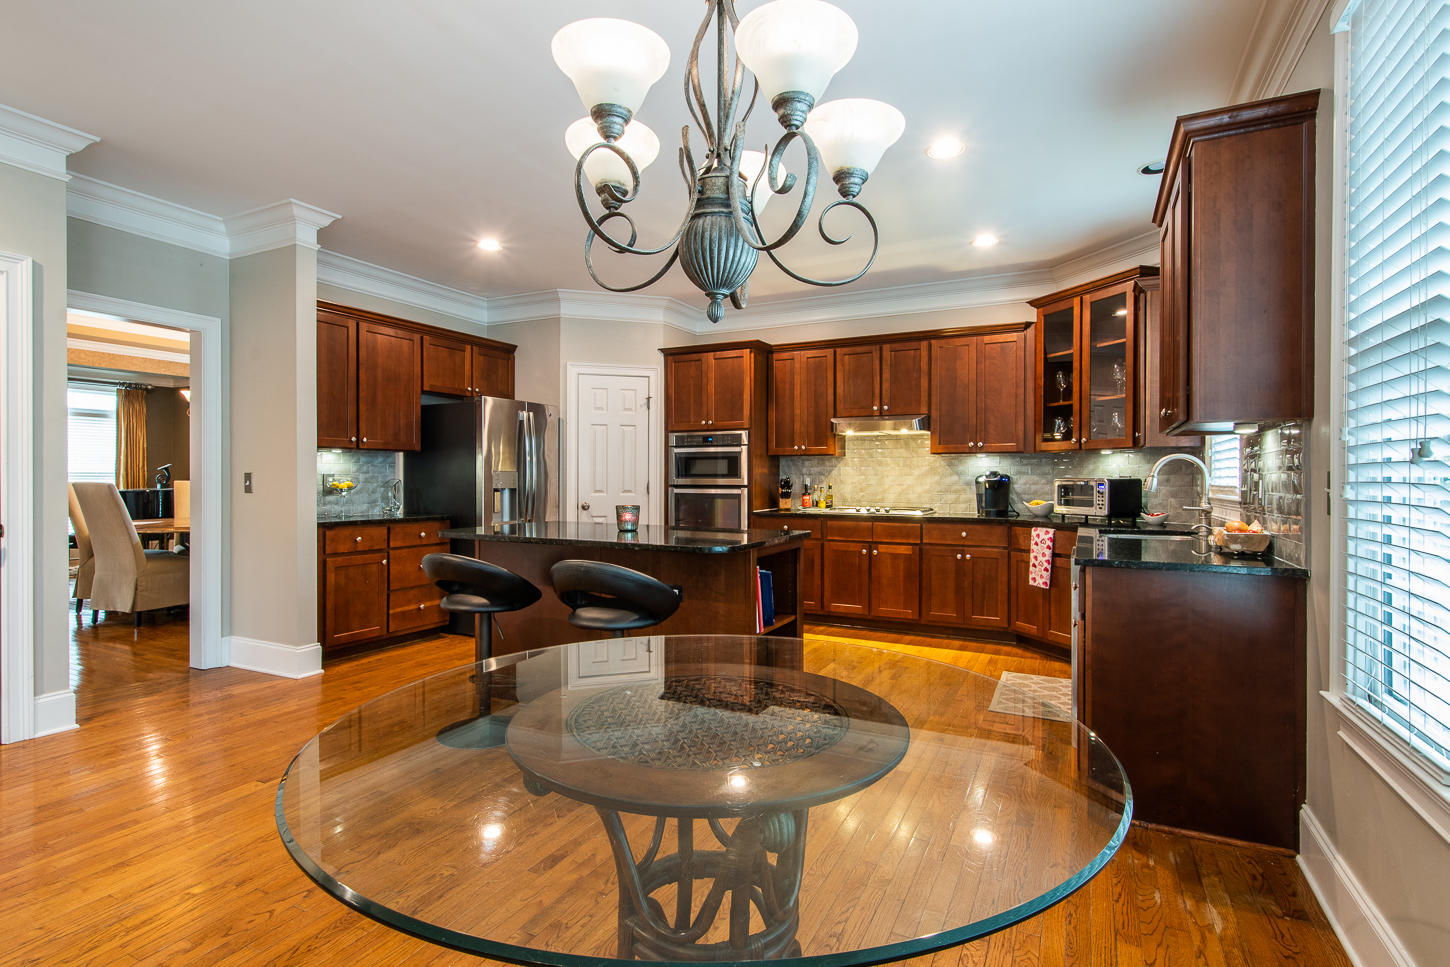 Dunes West Homes For Sale - 1794 Shell Ring, Mount Pleasant, SC - 33